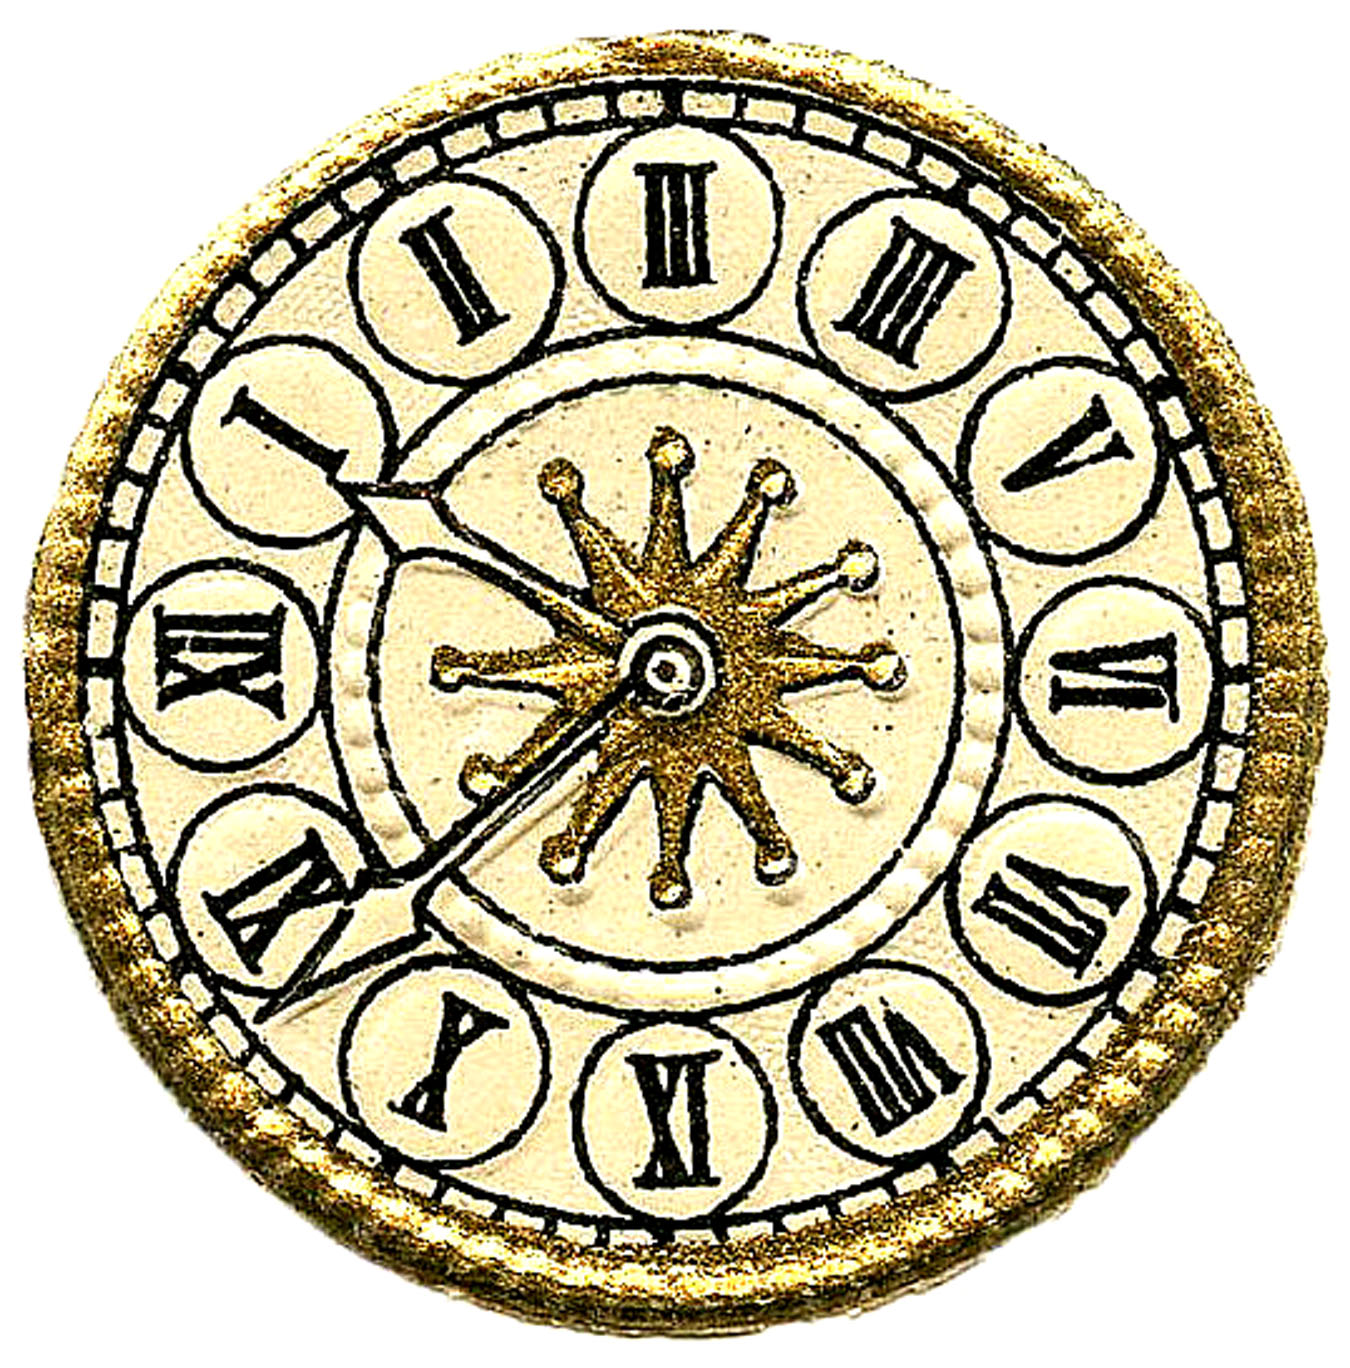 images print your. Steampunk clipart clock face